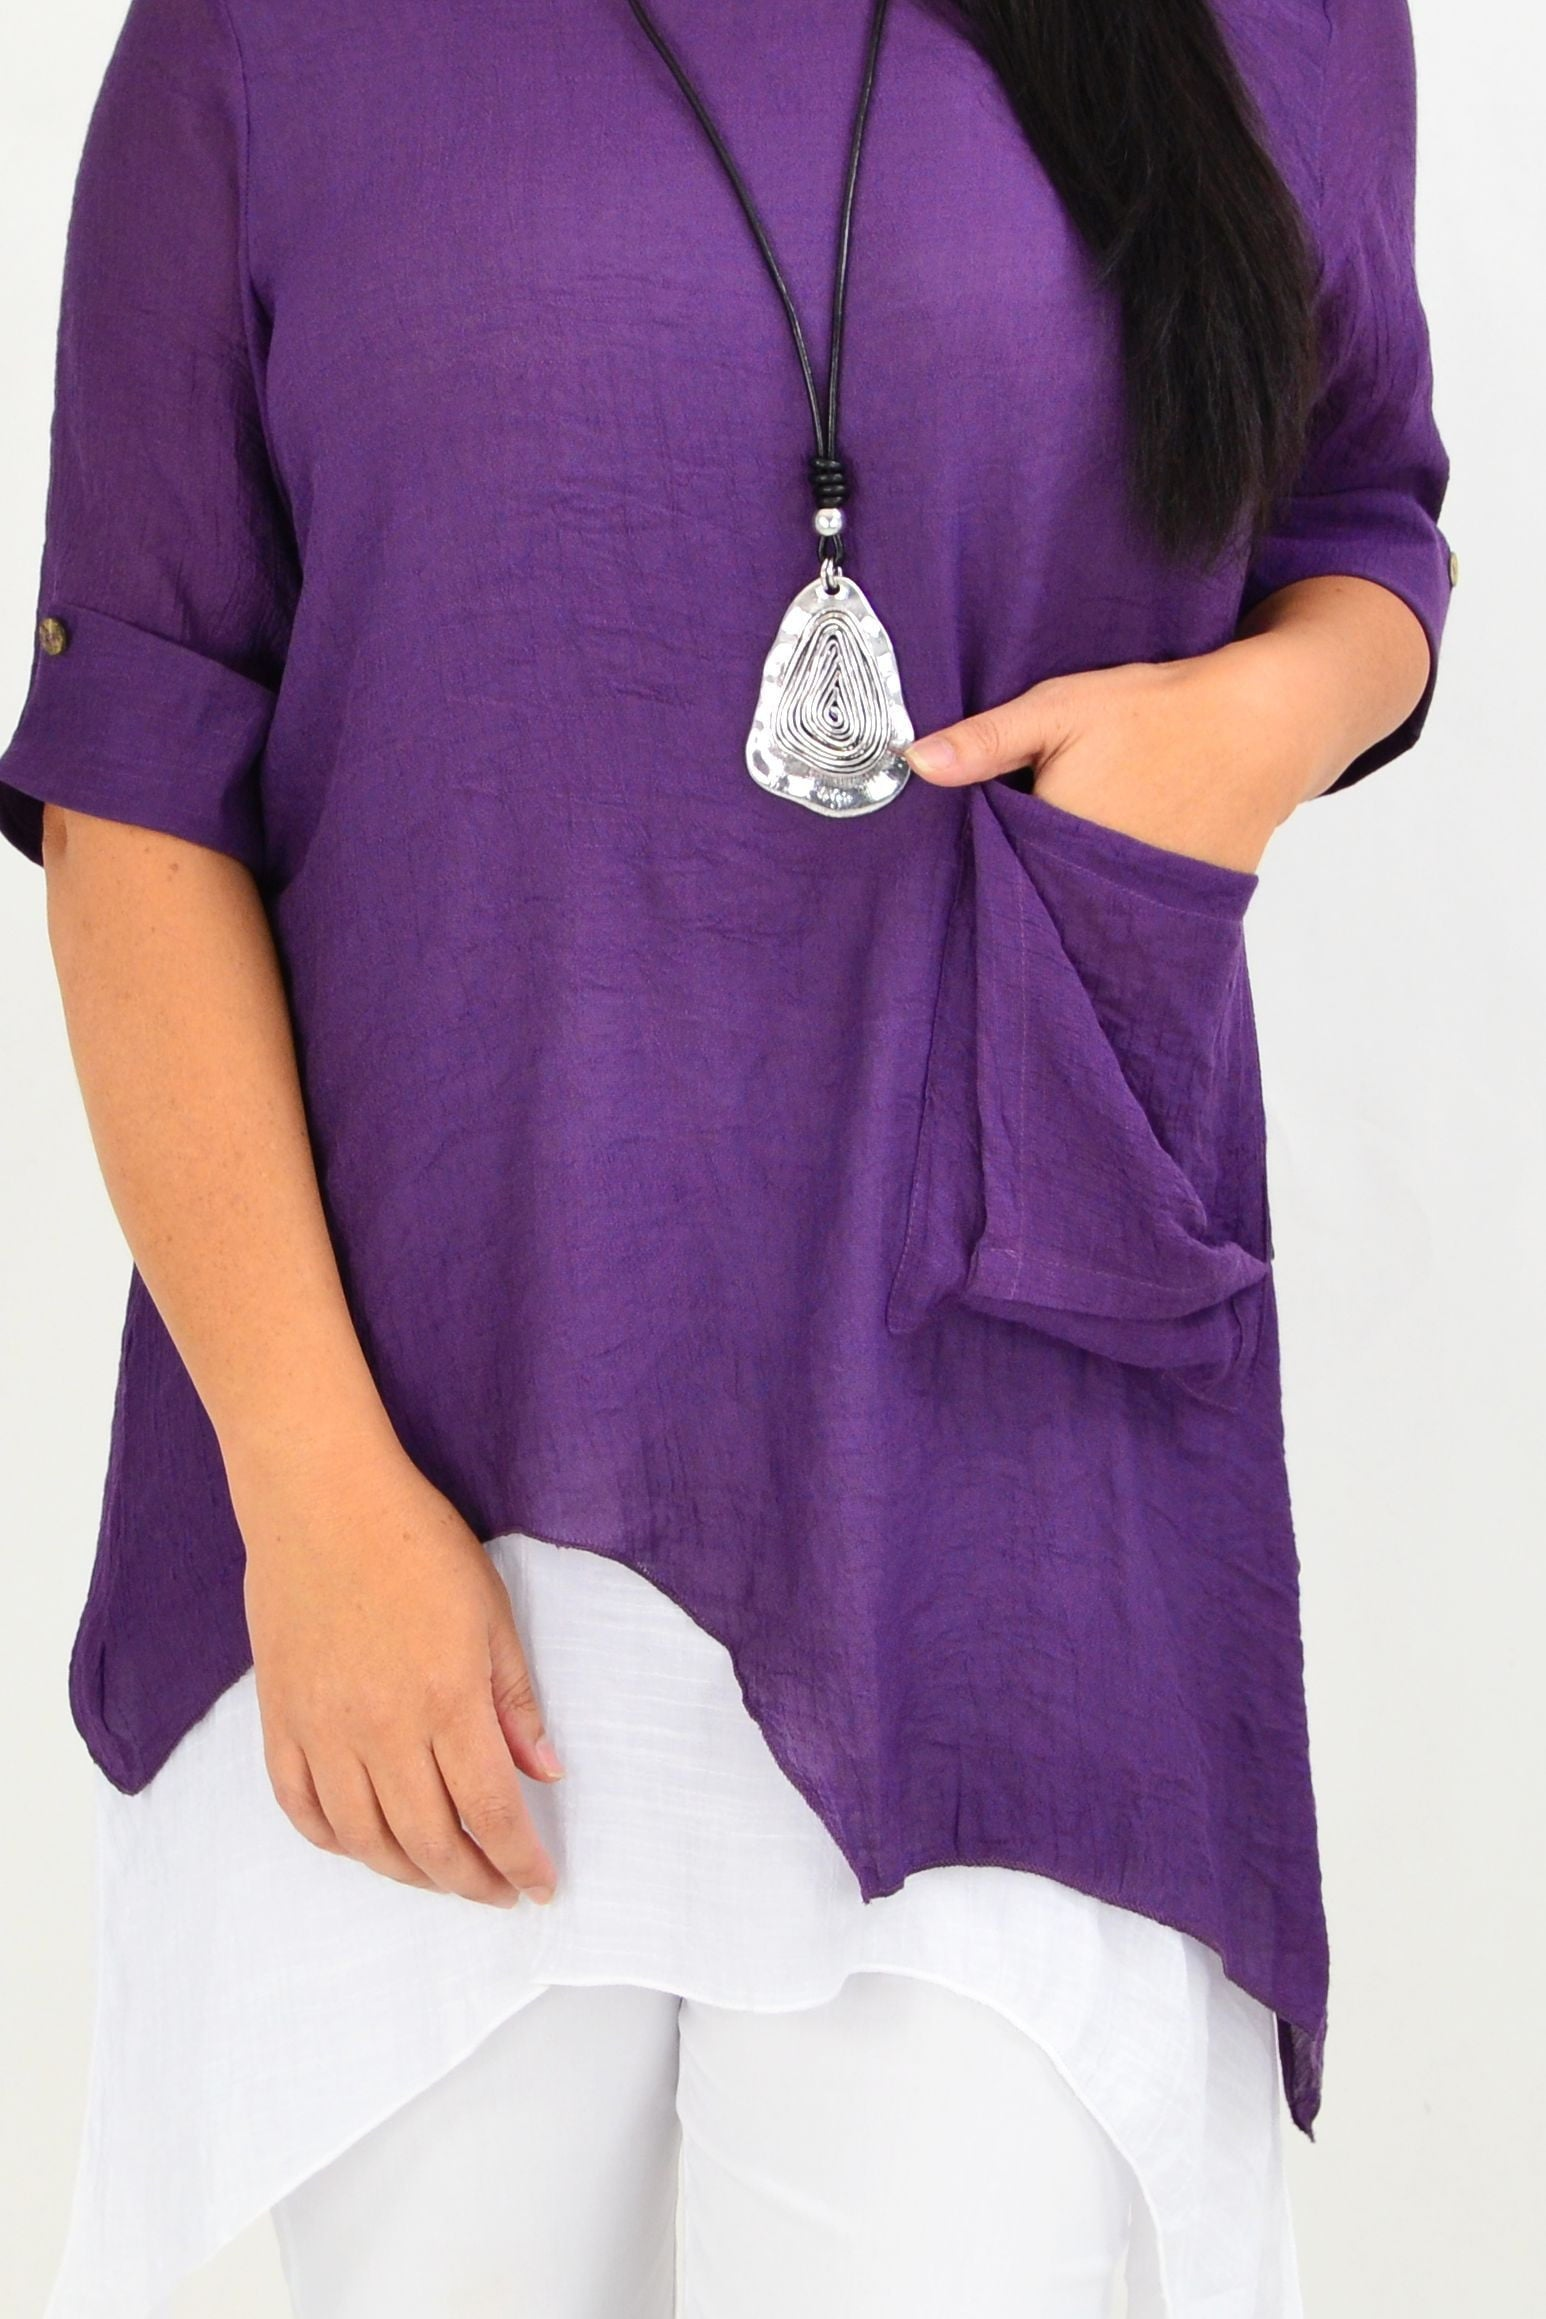 Pat's Purple Overlay Tunic Top | I Love Tunics | Tunic Tops | Tunic | Tunic Dresses  | womens clothing online